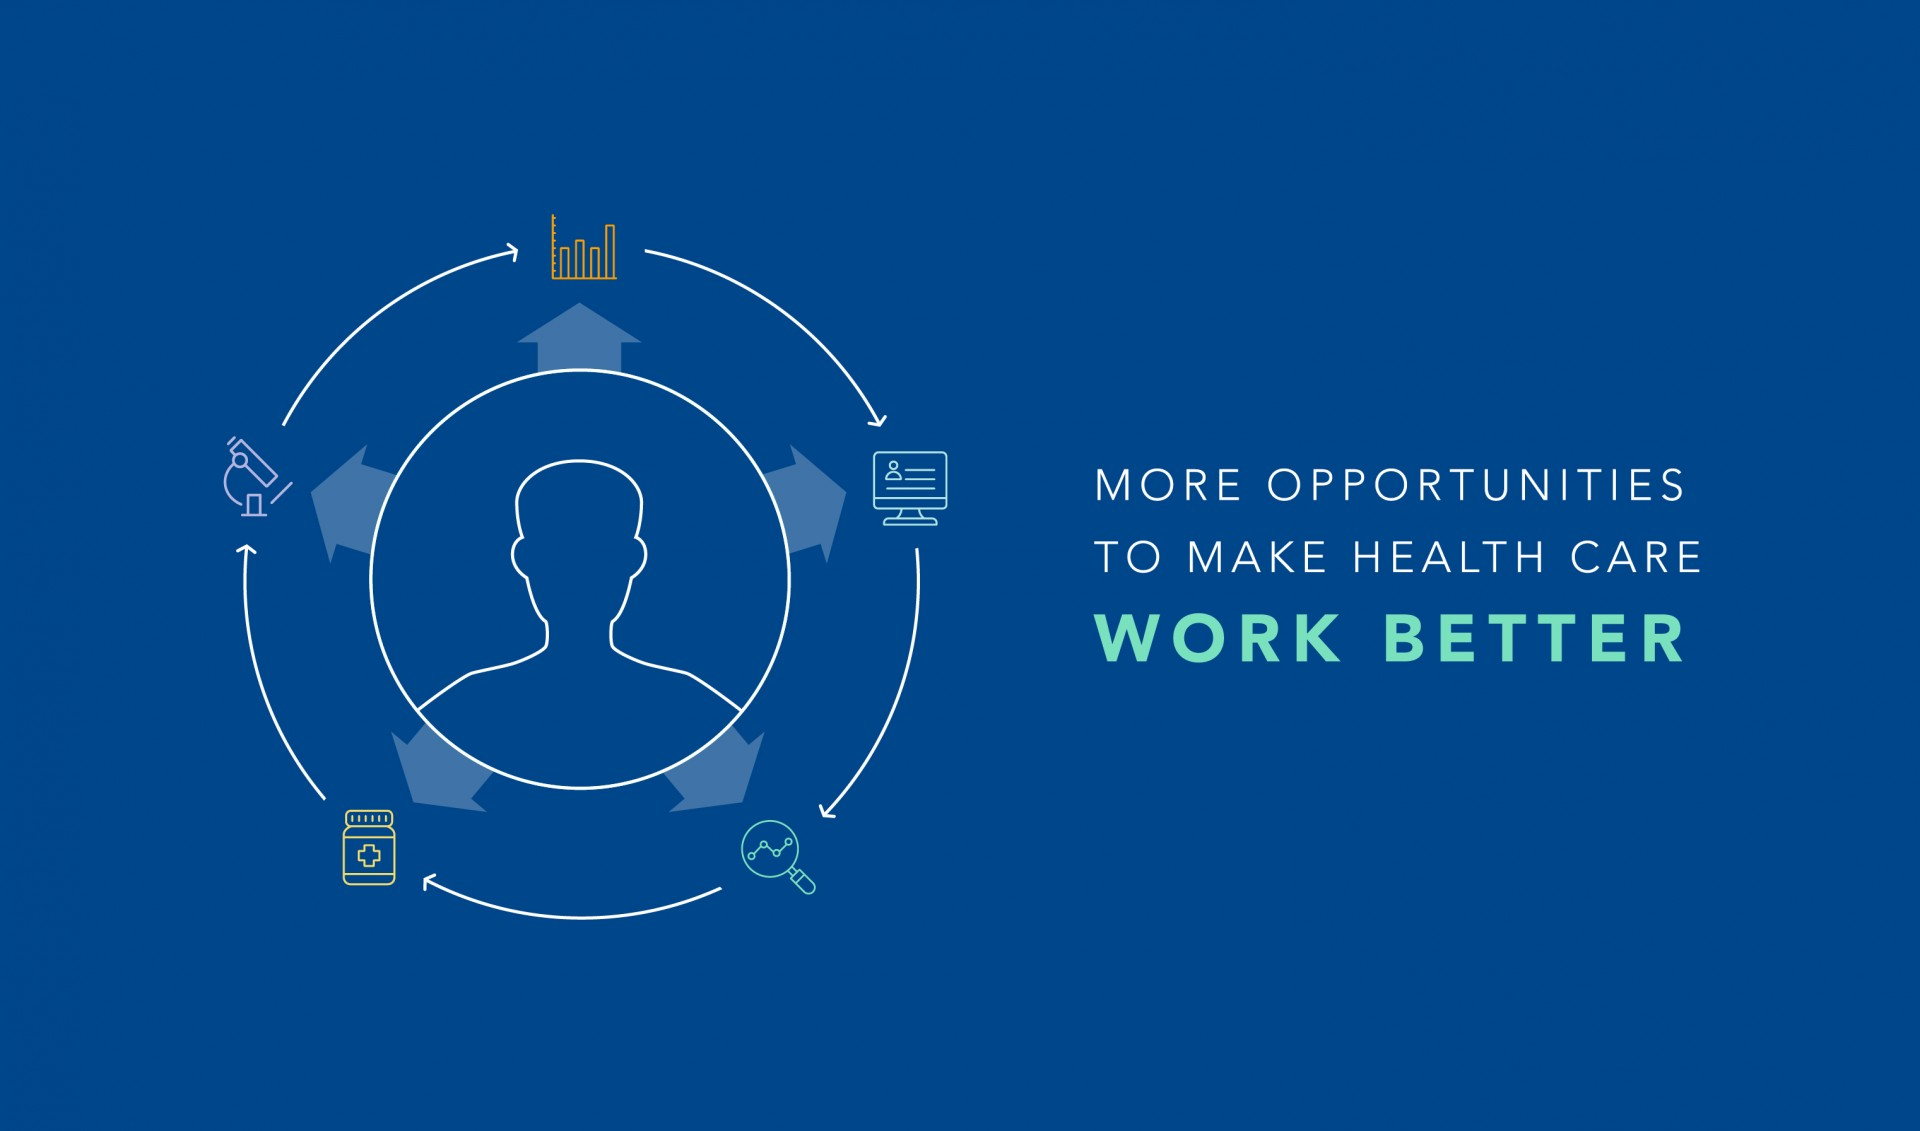 More Opportunities To Make Health Care Work Better